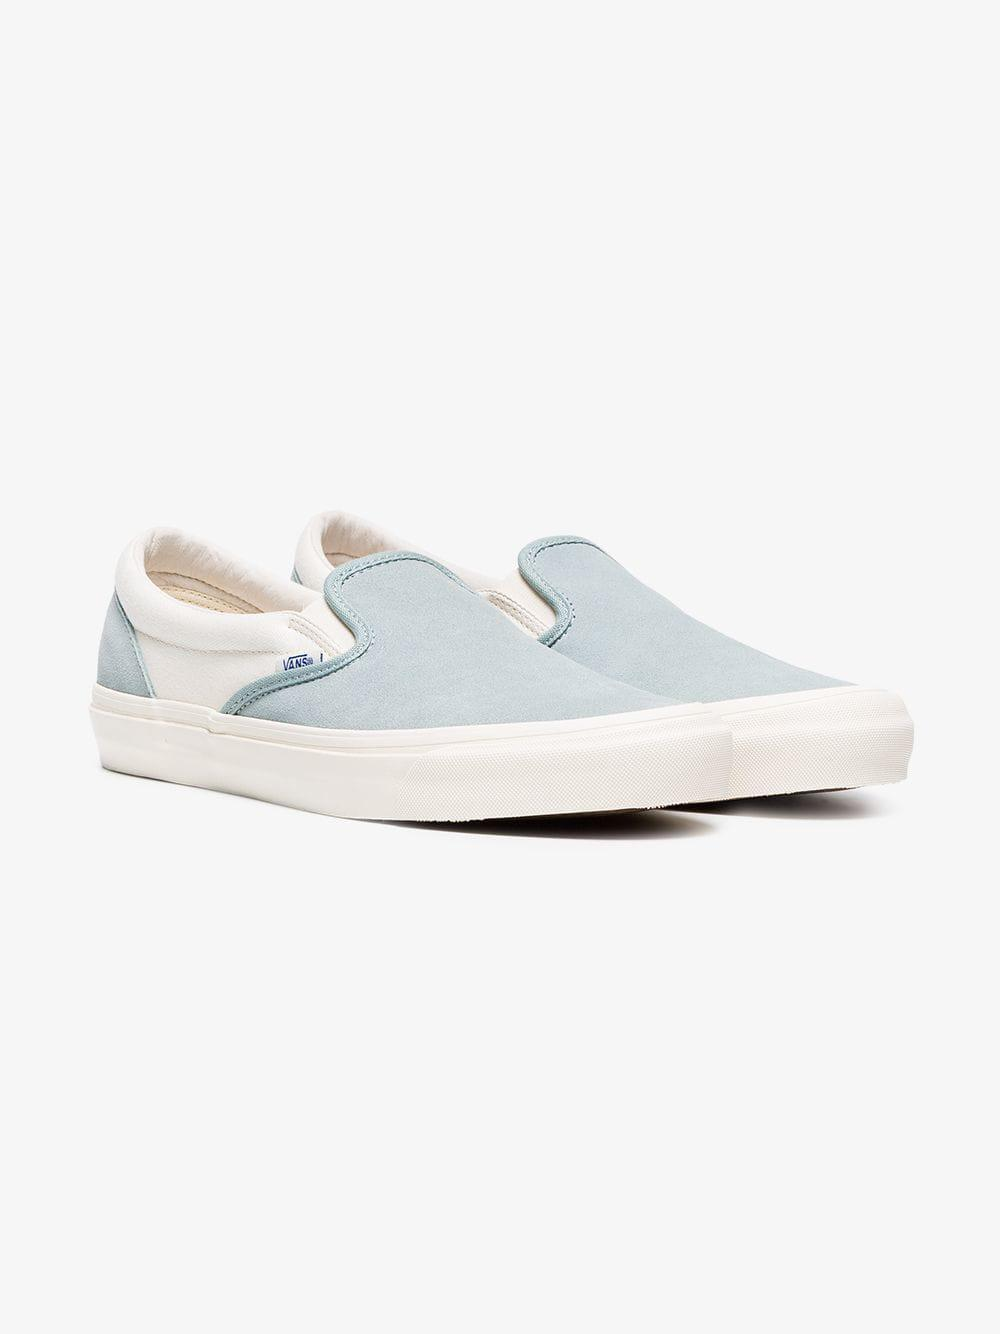 Vans Blue Og Classic Slip-on Lx Cotton Sneakers in Blue for Men - Save  33.33333333333333% - Lyst 8f048c00d